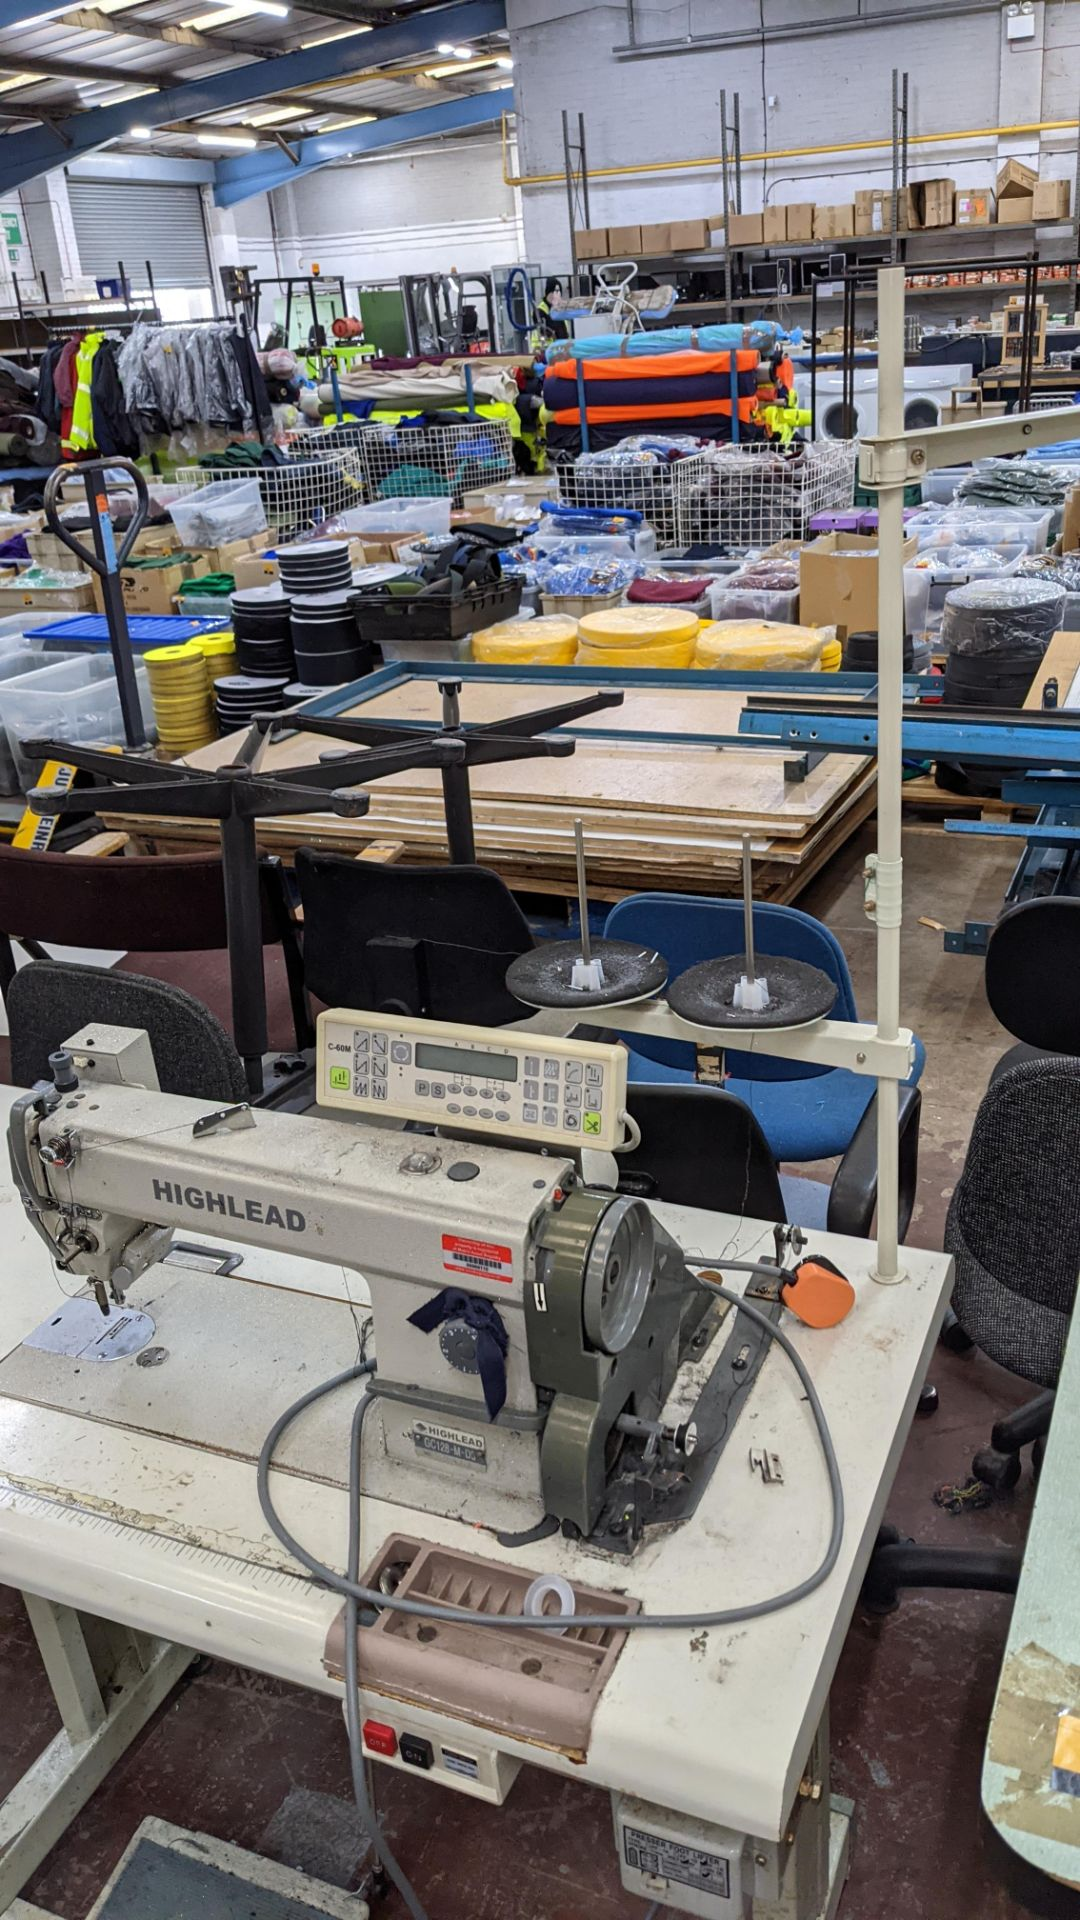 Highlead model GC128-M-D3 sewing machine with model C-60M digital controller - Image 3 of 14